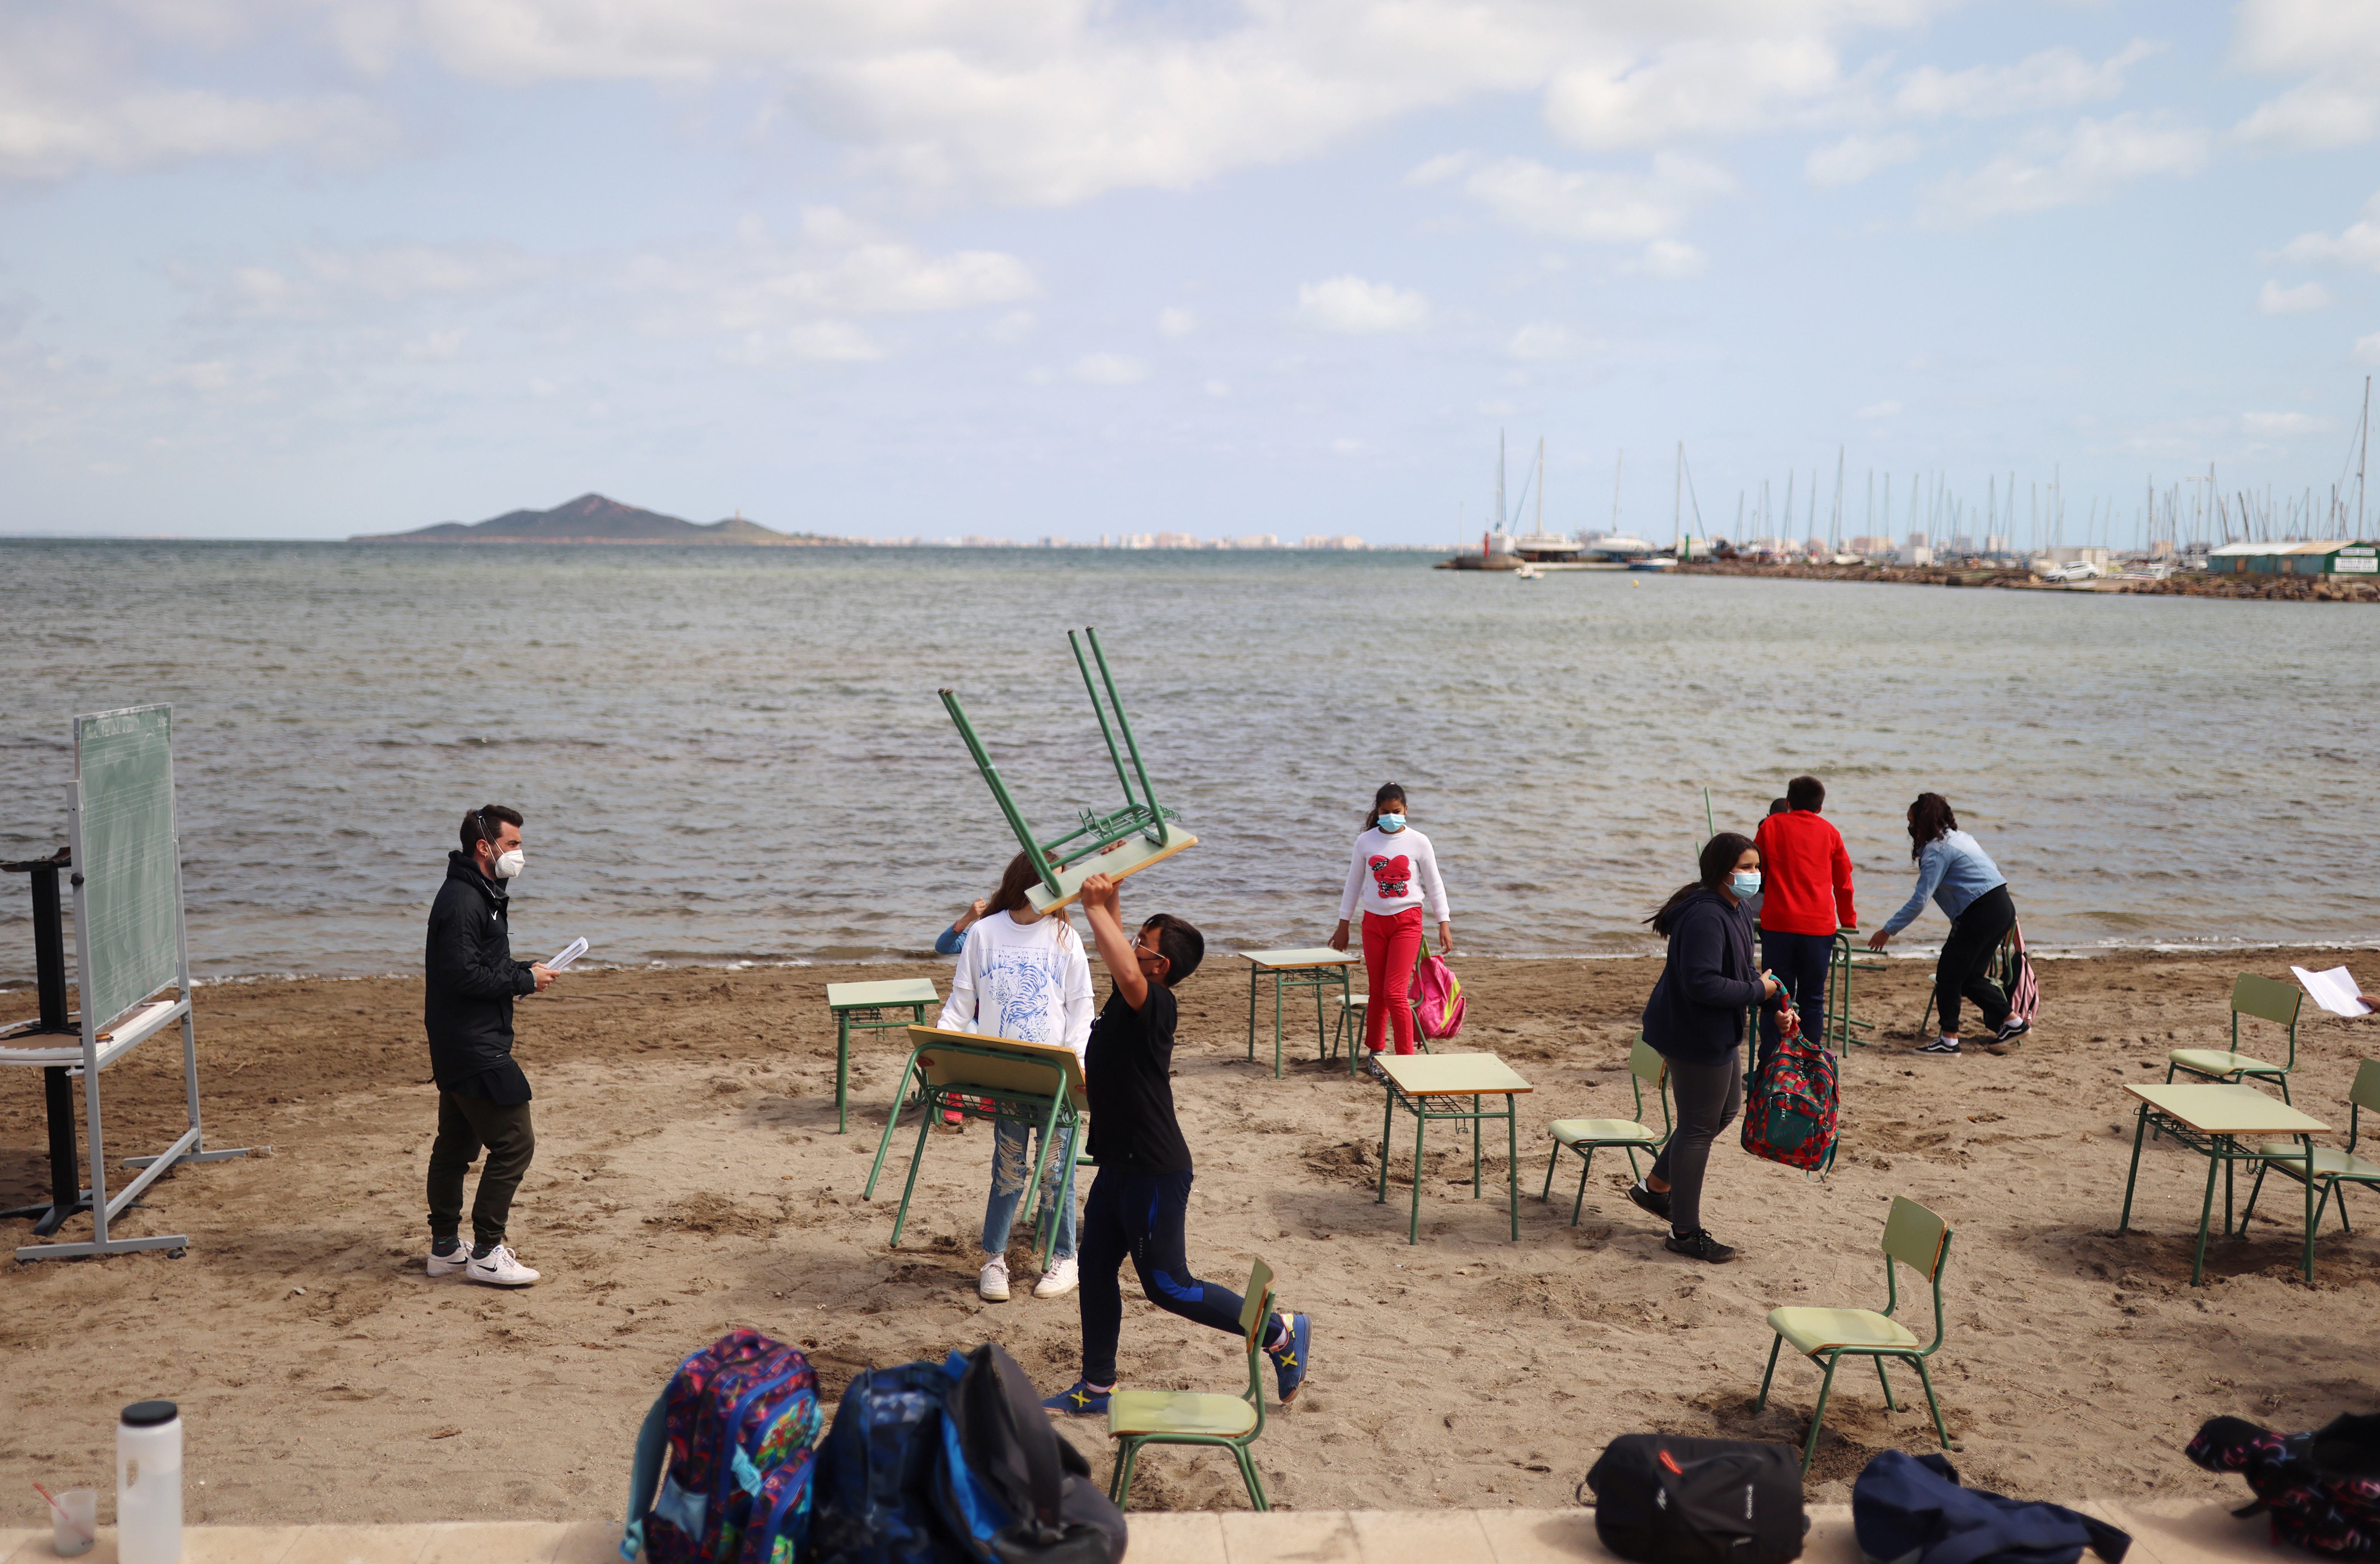 Students and teachers of the Felix Rodriguez de la Fuente school remove chairs and tables at the end of their class, as part of a project known as 'Aire Limpio' (Fresh Air) at the Playa de los Nietos (The Grandchildren's Beach), which aims to use better air quality for children during the coronavirus disease (COVID-19) pandemic, near Cartagena, southern Spain April 8, 2021. REUTERS/Nacho Doce